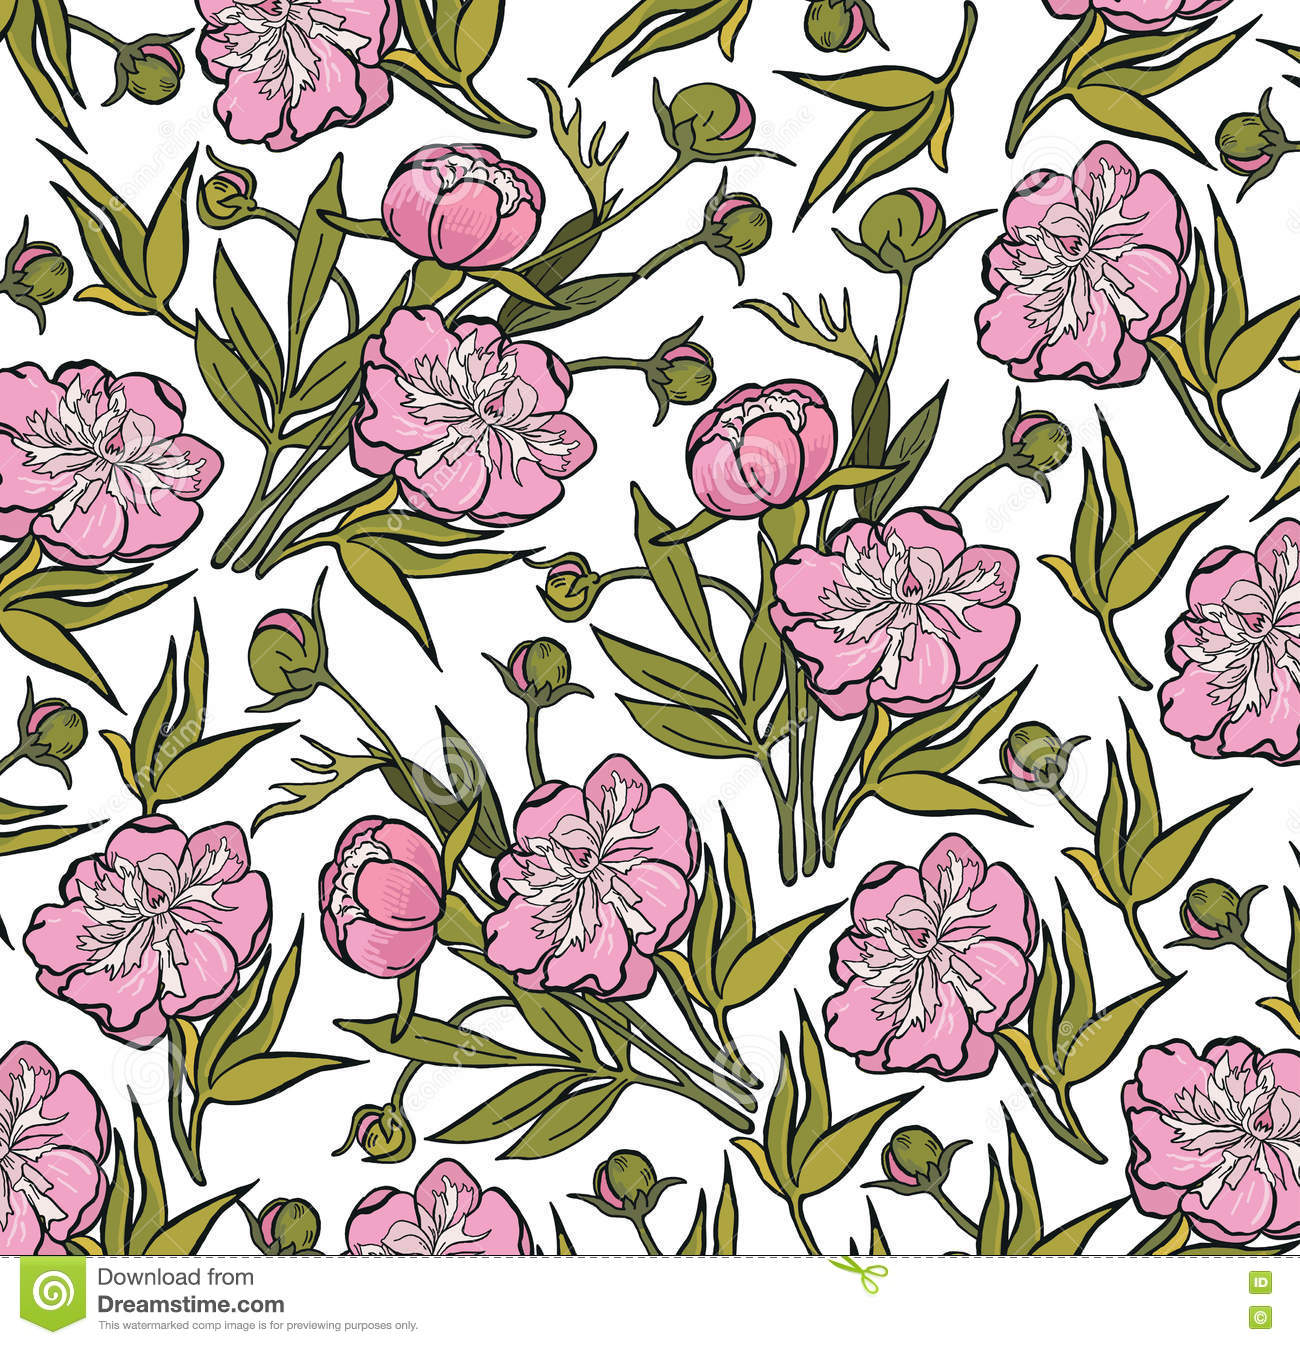 Peony Realistic Isolated Flowers Pattern Vintage Baroque Background Wallpaper Drawing Engraving